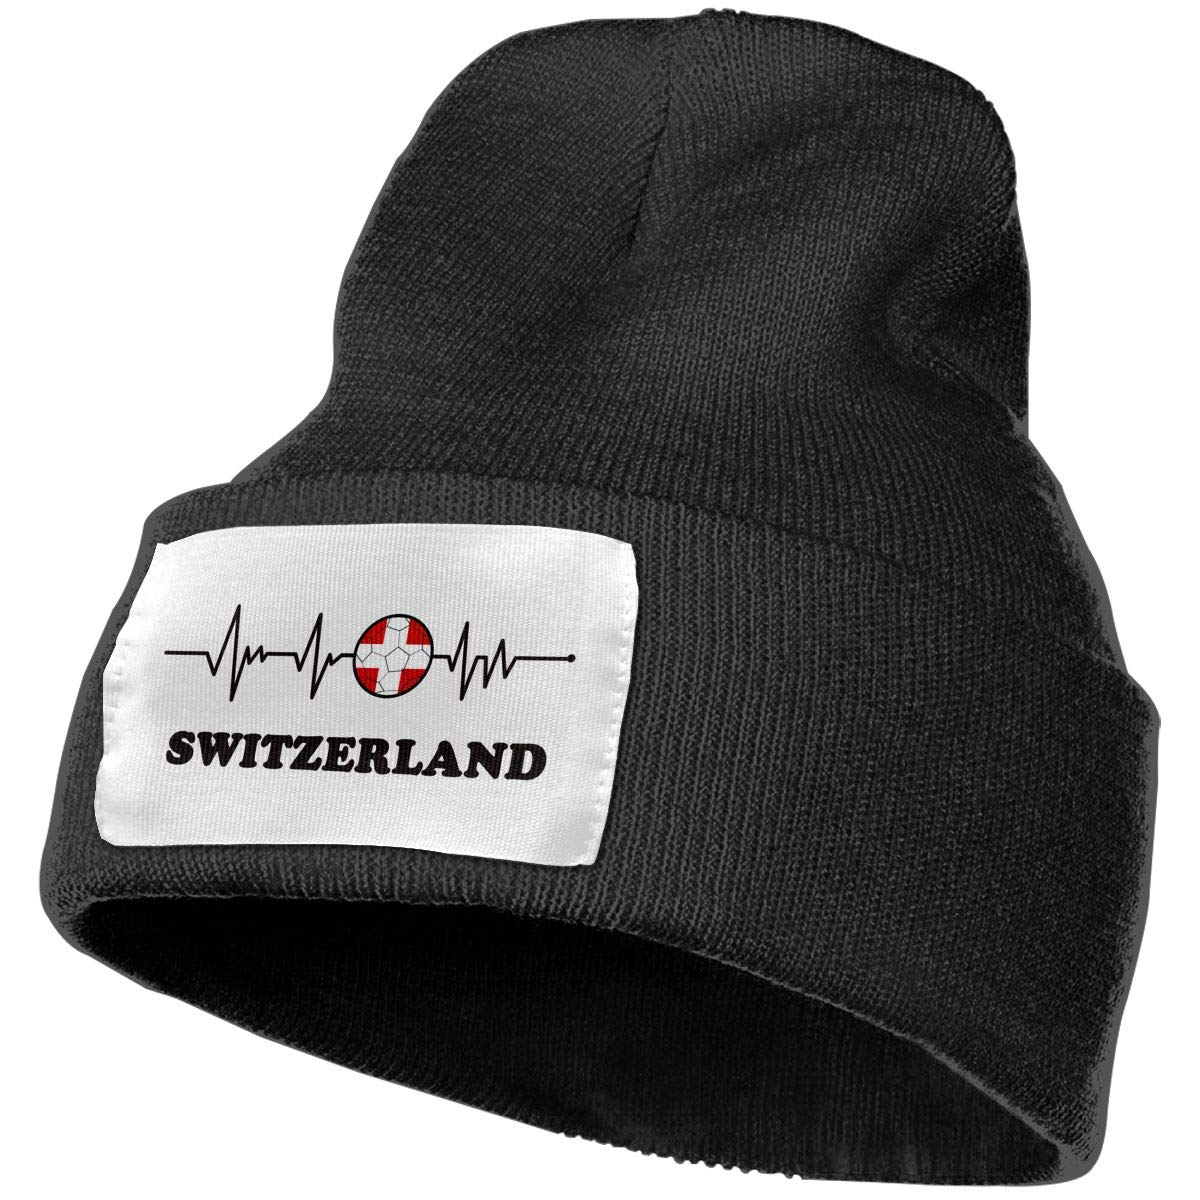 Unisex Soccer Heartbeat I Love Switzerland Outdoor Fashion Knit Beanies Hat Soft Winter Skull Caps